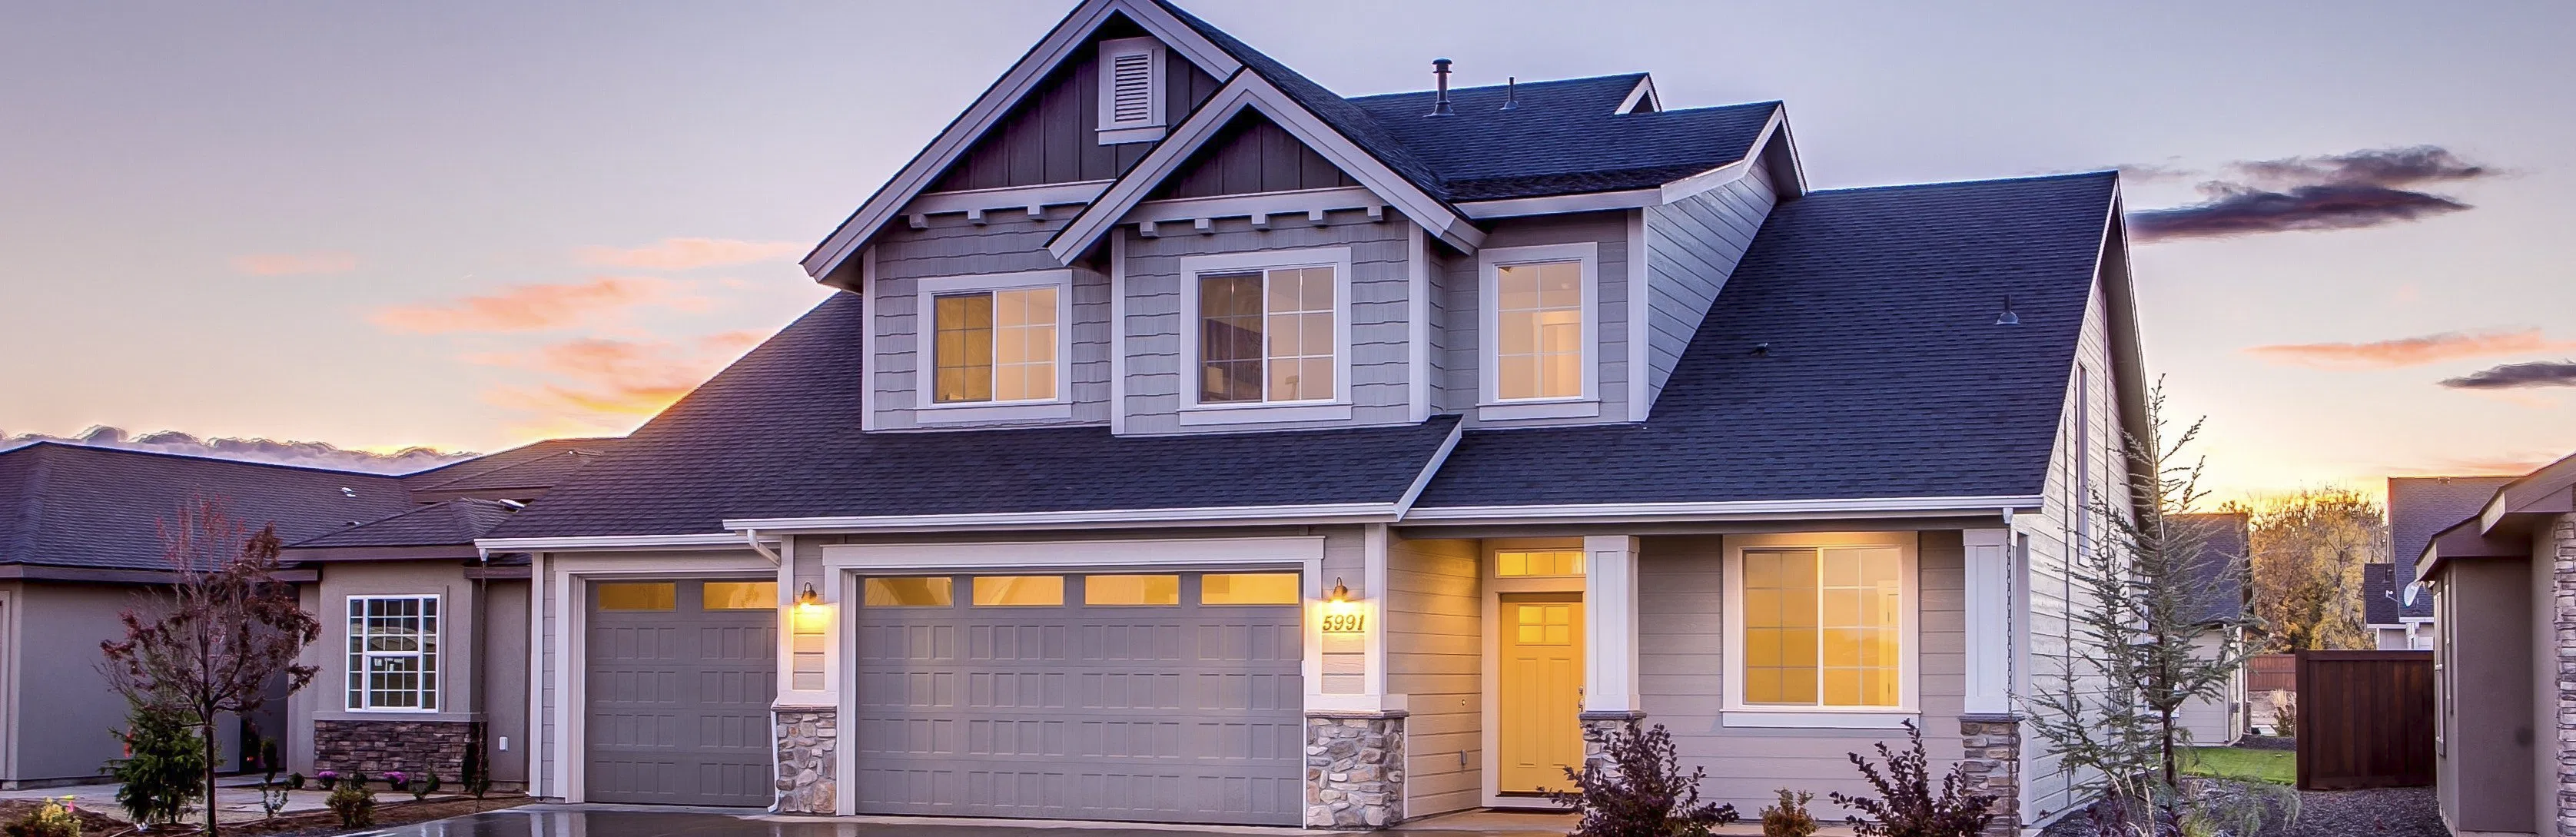 Roofing | Siding | Windows | Remodeling